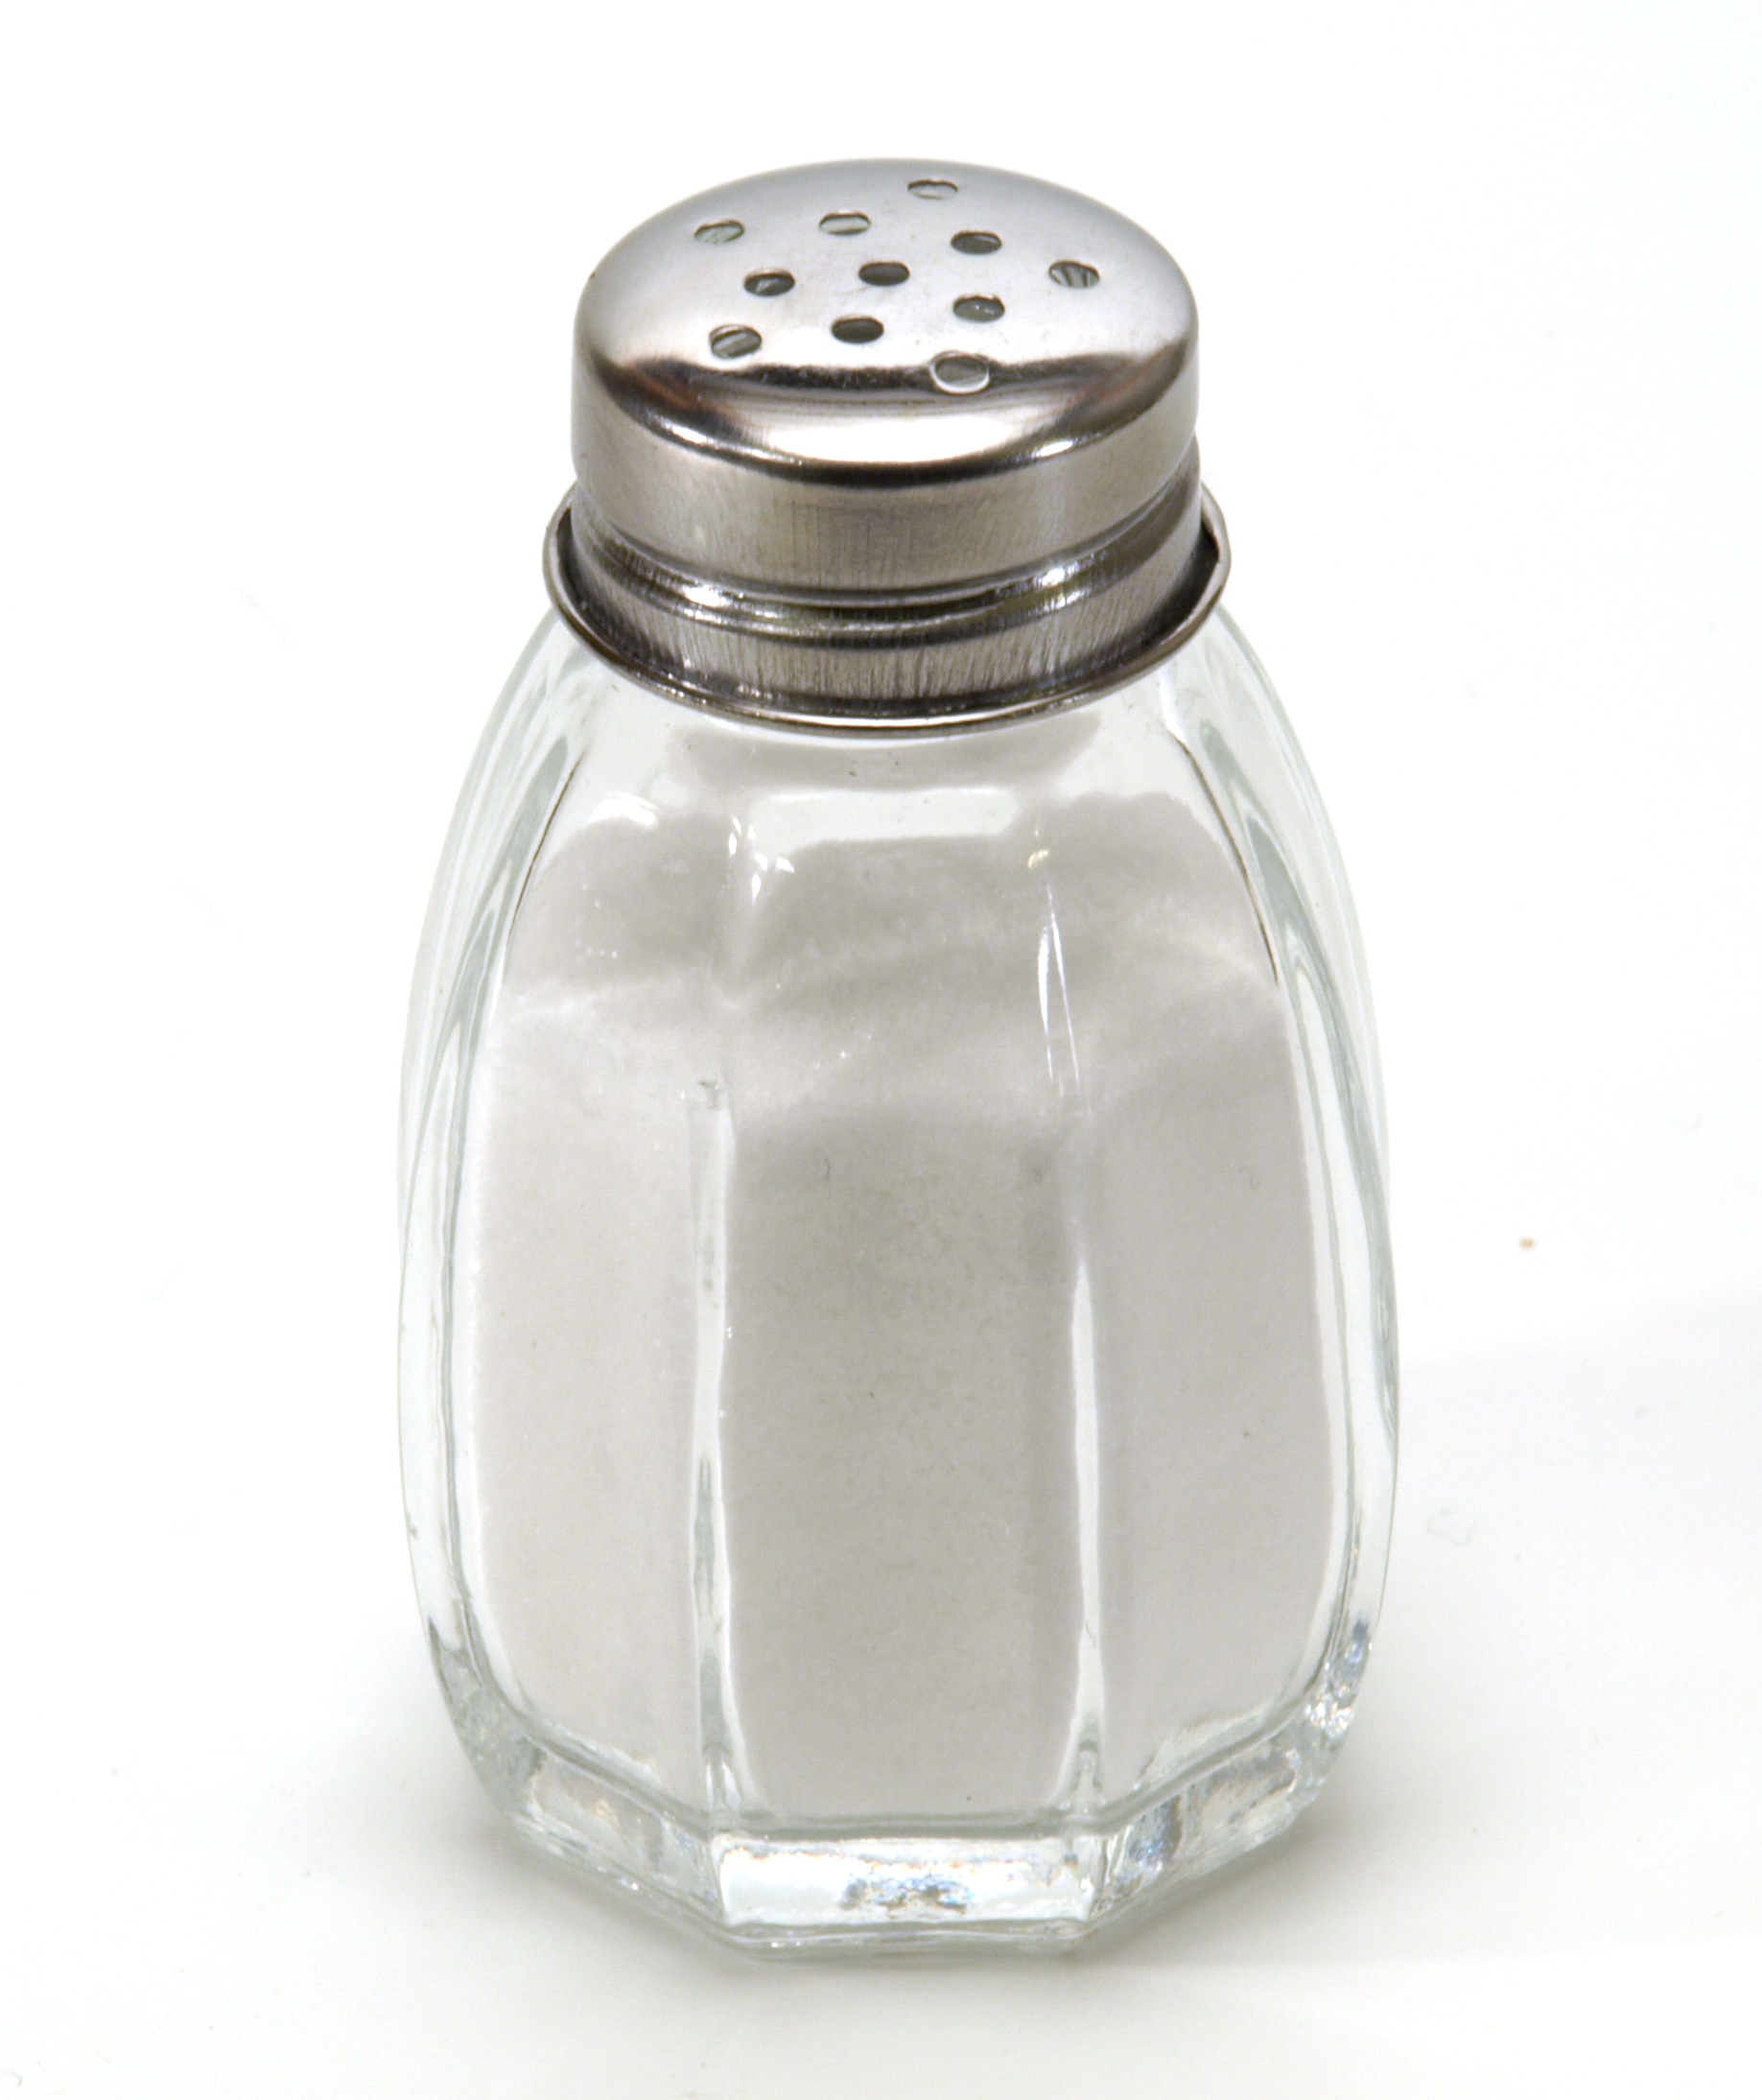 Salt_shaker_on_white_background.jpg